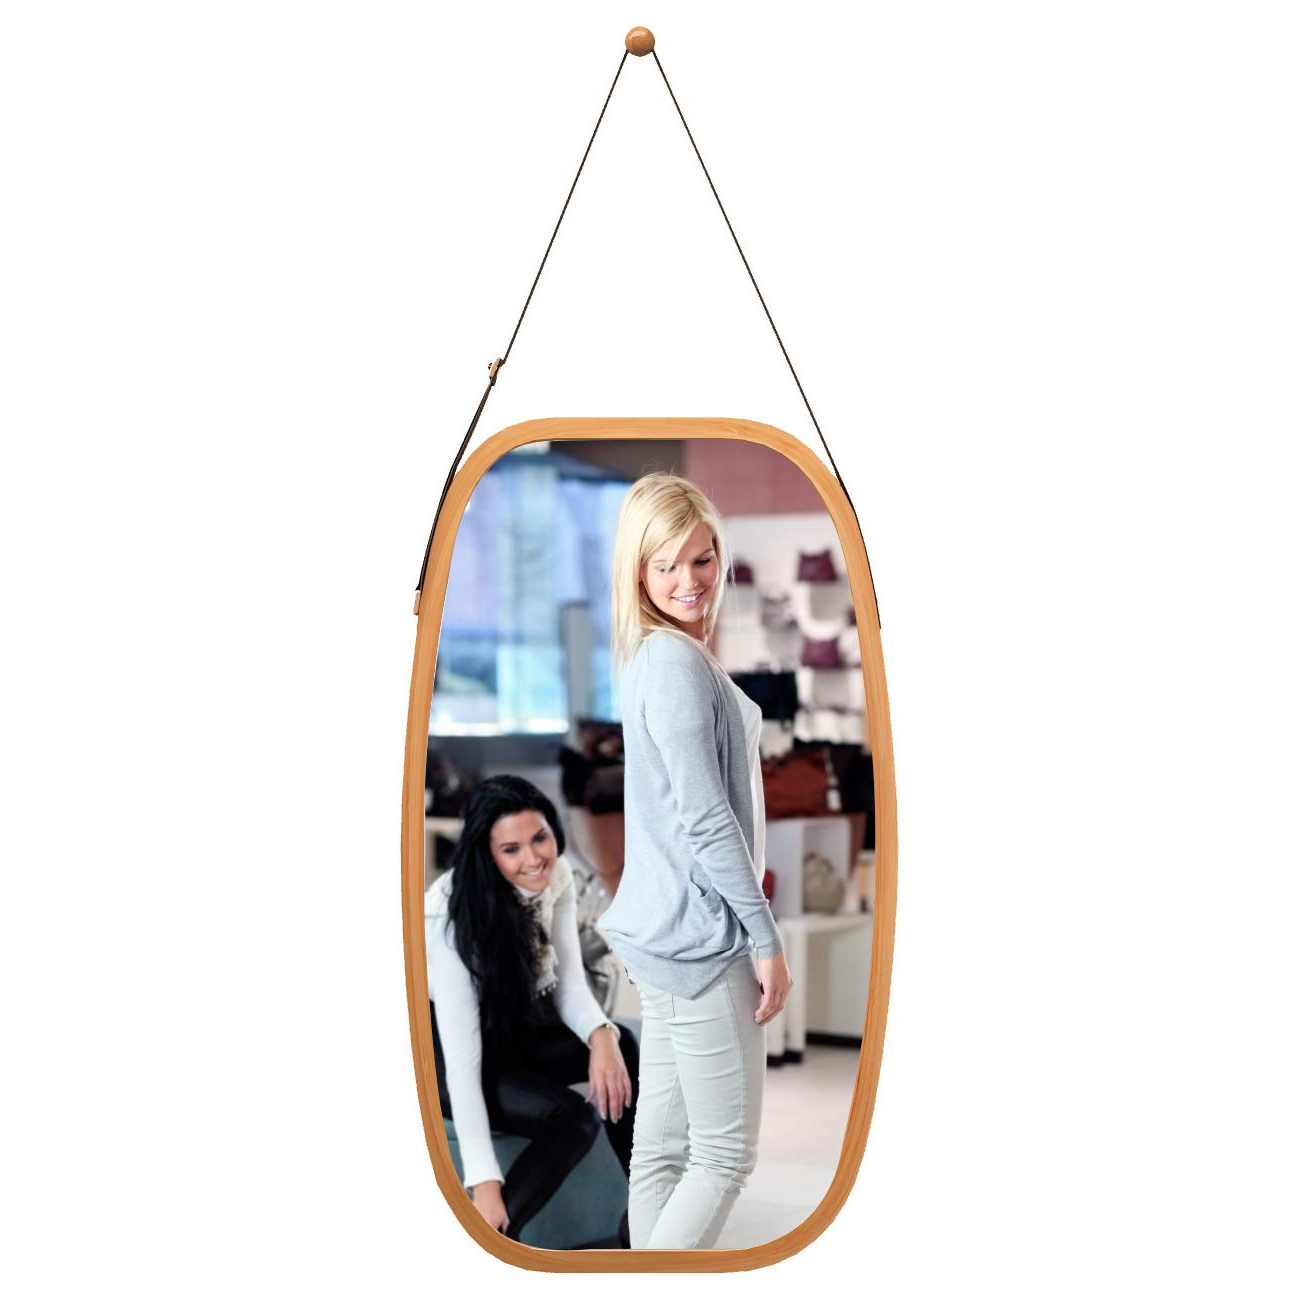 Full Length Wall Mirror Hanging In Bathroom & Bedroom – Solid Bamboo Frame  & Adjustable Leather Strap, Makeup Dressing Home Decor (Bamboo, 29L 17W Throughout Most Popular Bamboo Framed Wall Mirrors (View 10 of 20)